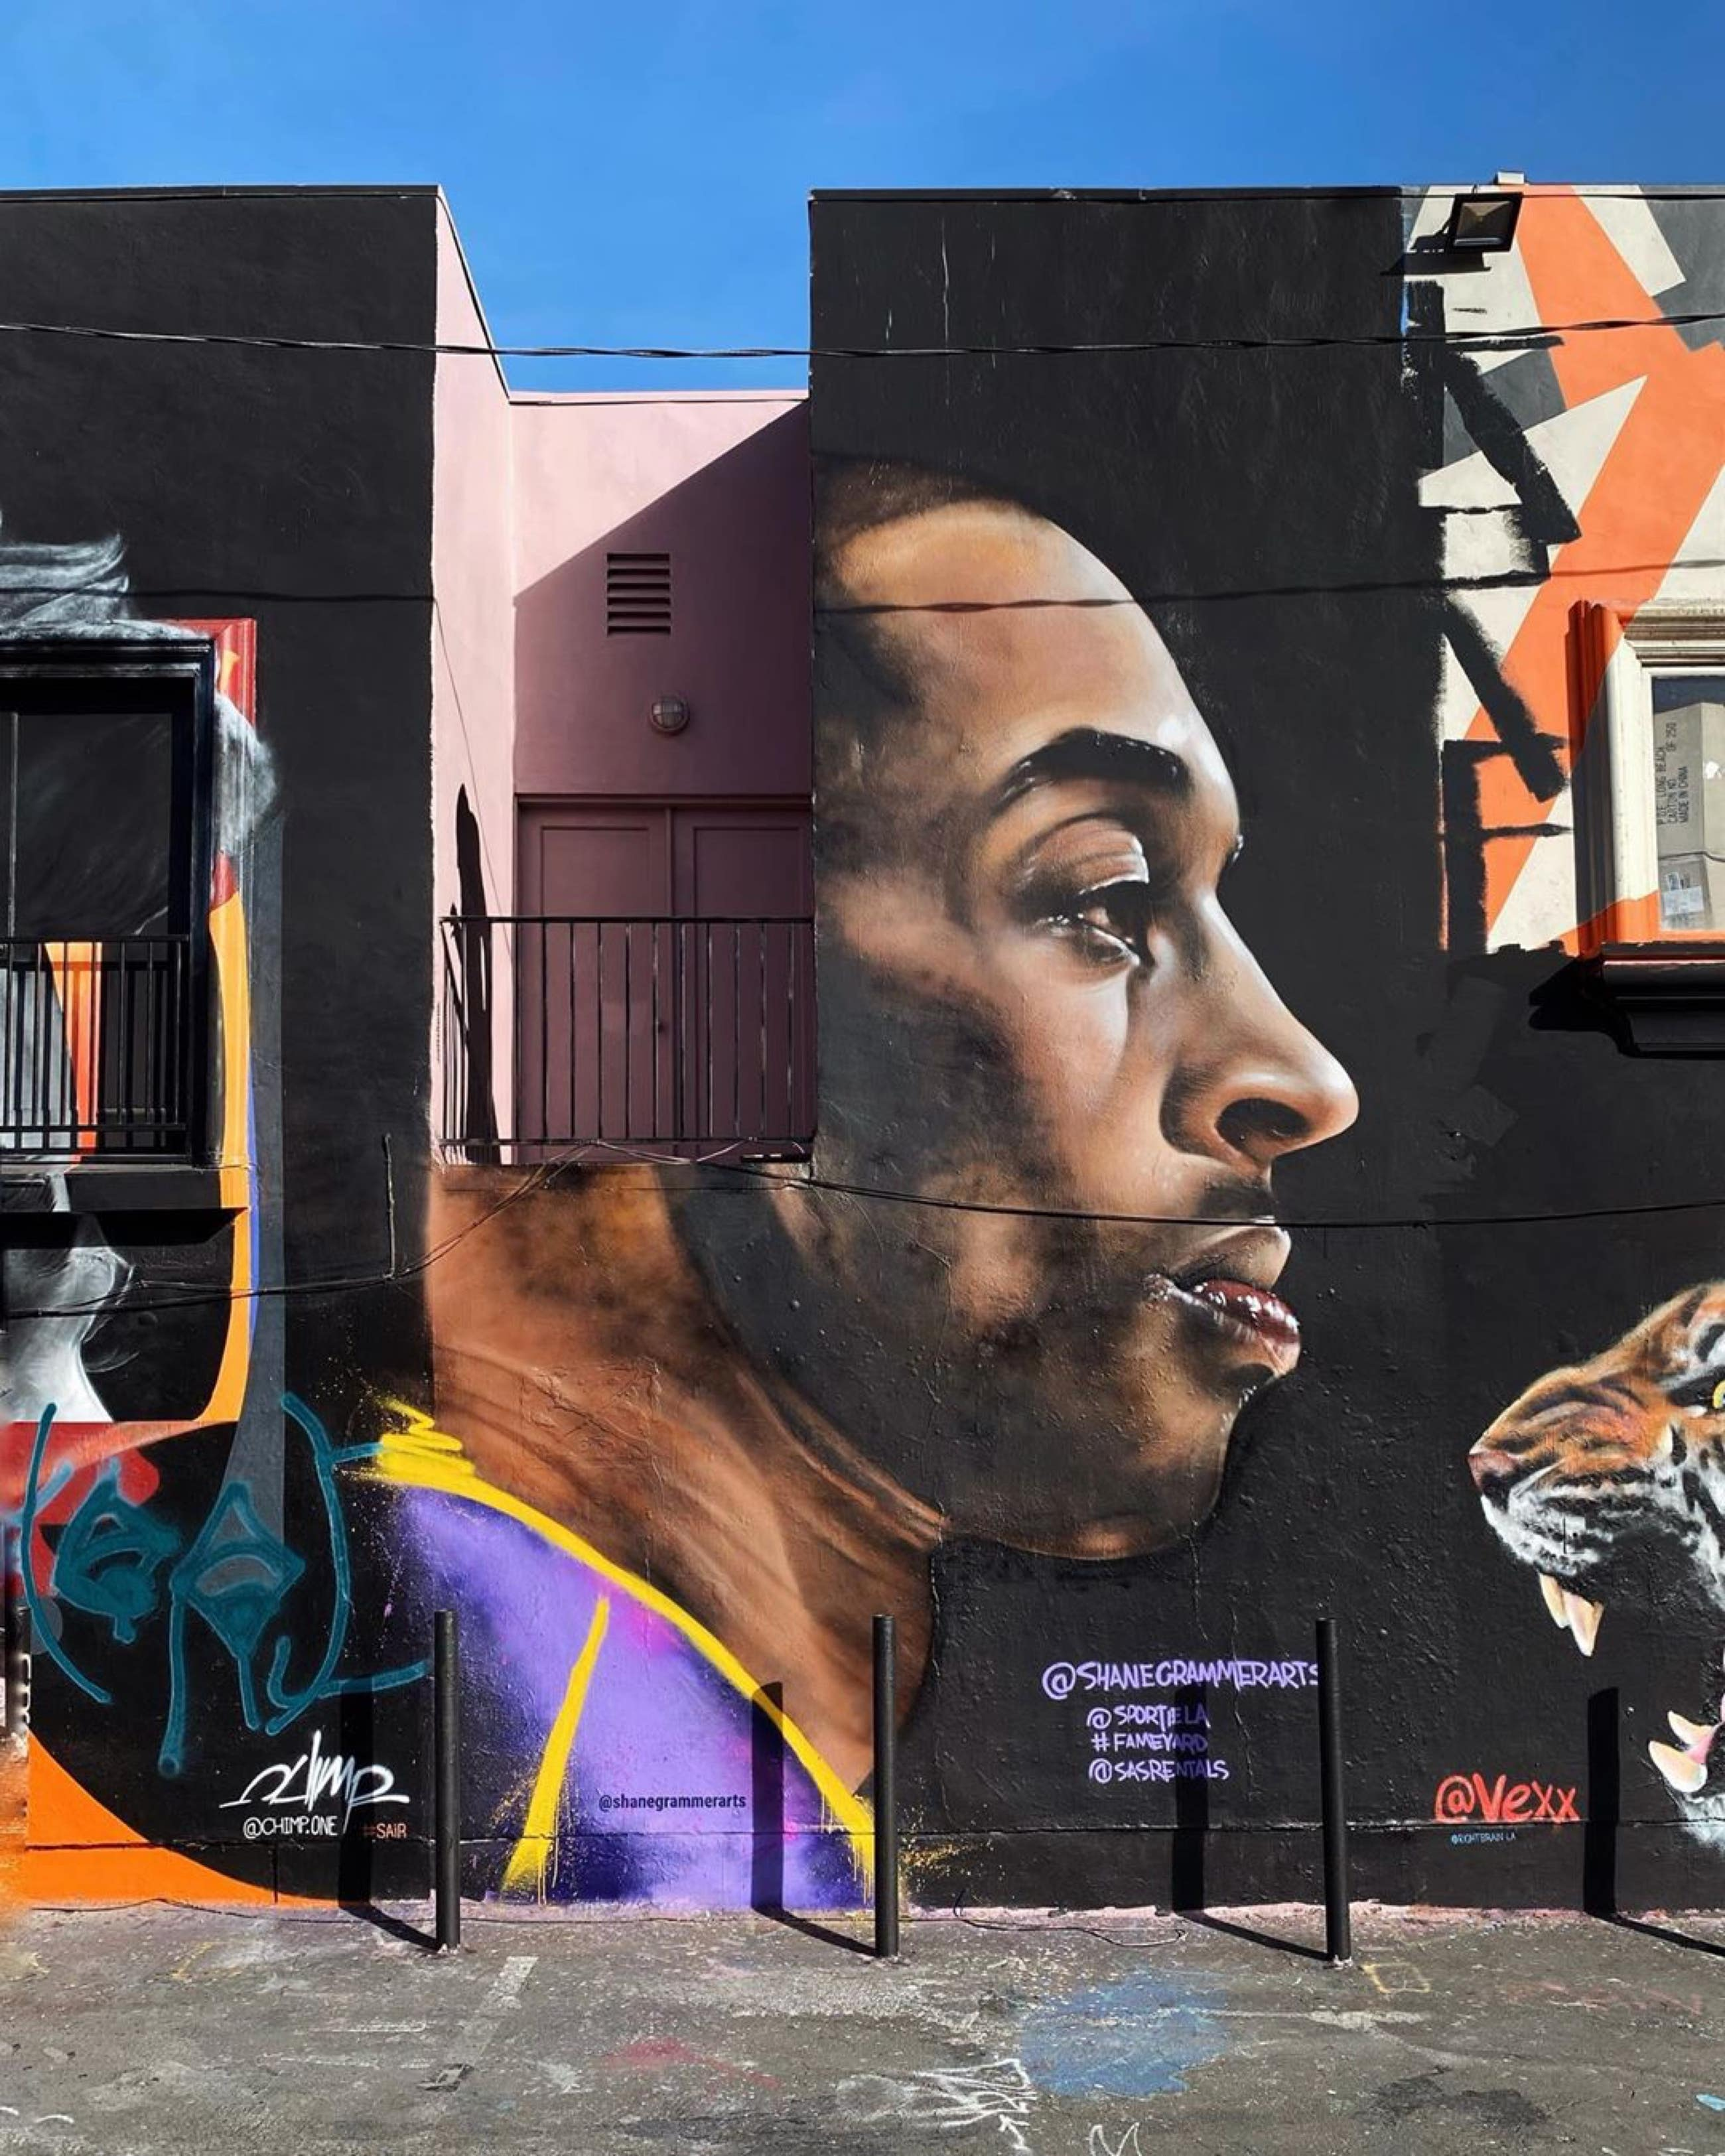 Kobe Bryant mural by Shane Grammer at Sportie LA on Melrose